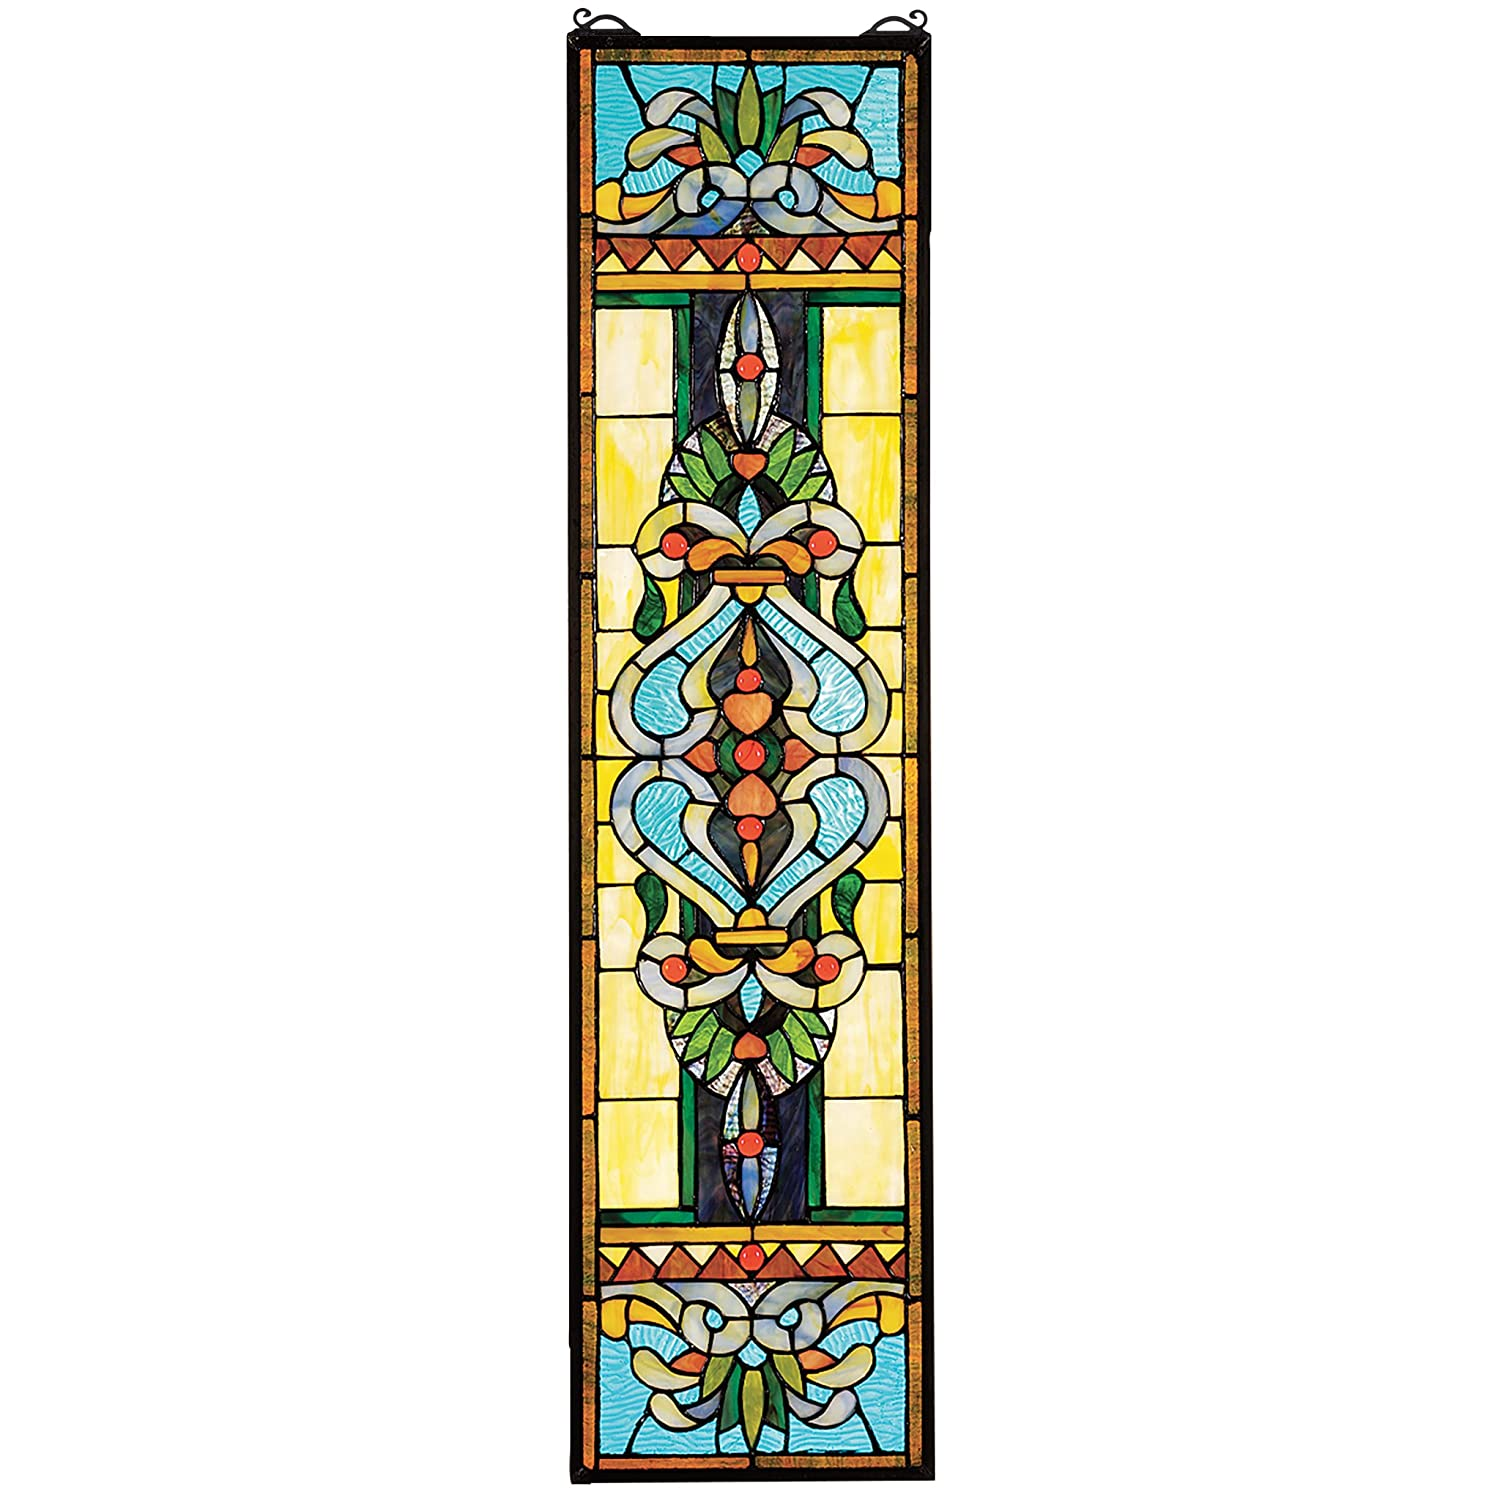 Design Toscano Blackstone Hall Stained Glass Window Hanging Panel, 35 Inch, Stained Glass, Full Color